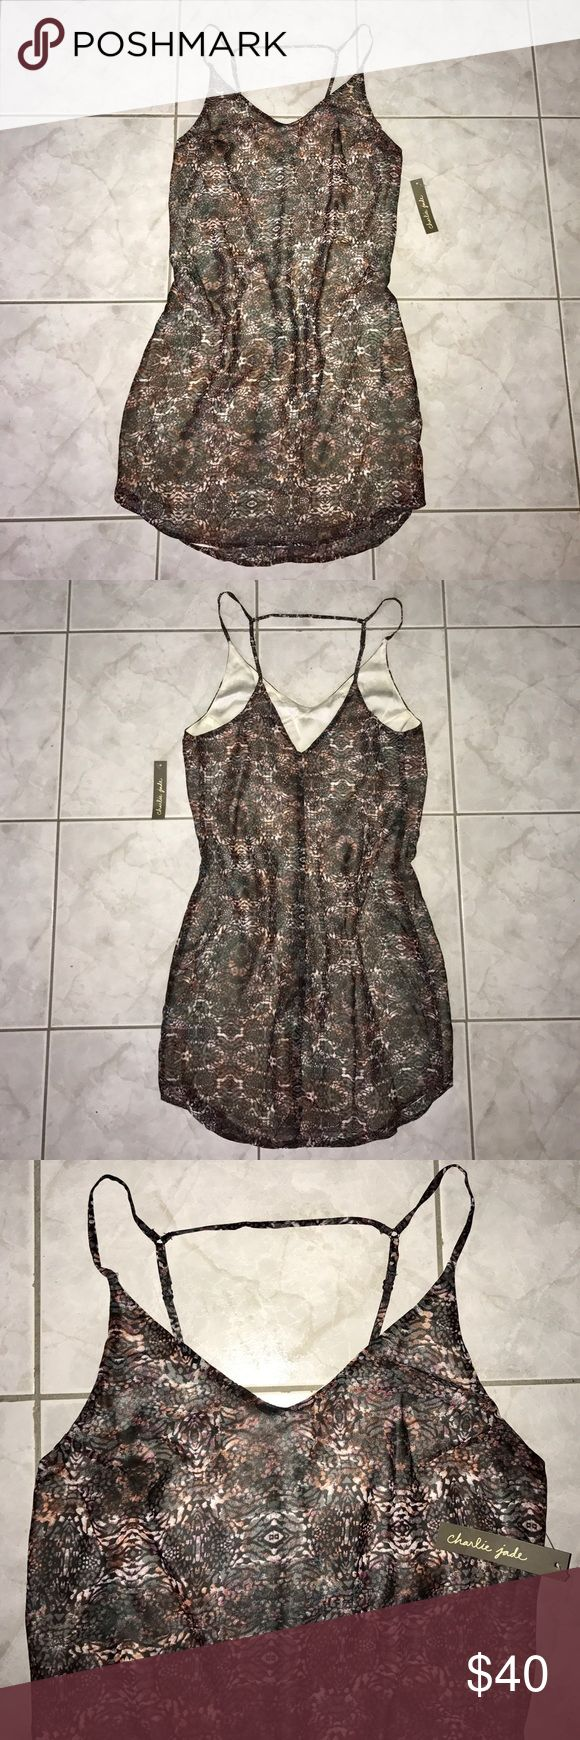 Charlie Jade Dress NWT Patterned, Charlie Jade, dress. NWT. Colors include shades of grays, reds and creams. ✨Bundle and Save✨ Anthropologie Dresses Midi